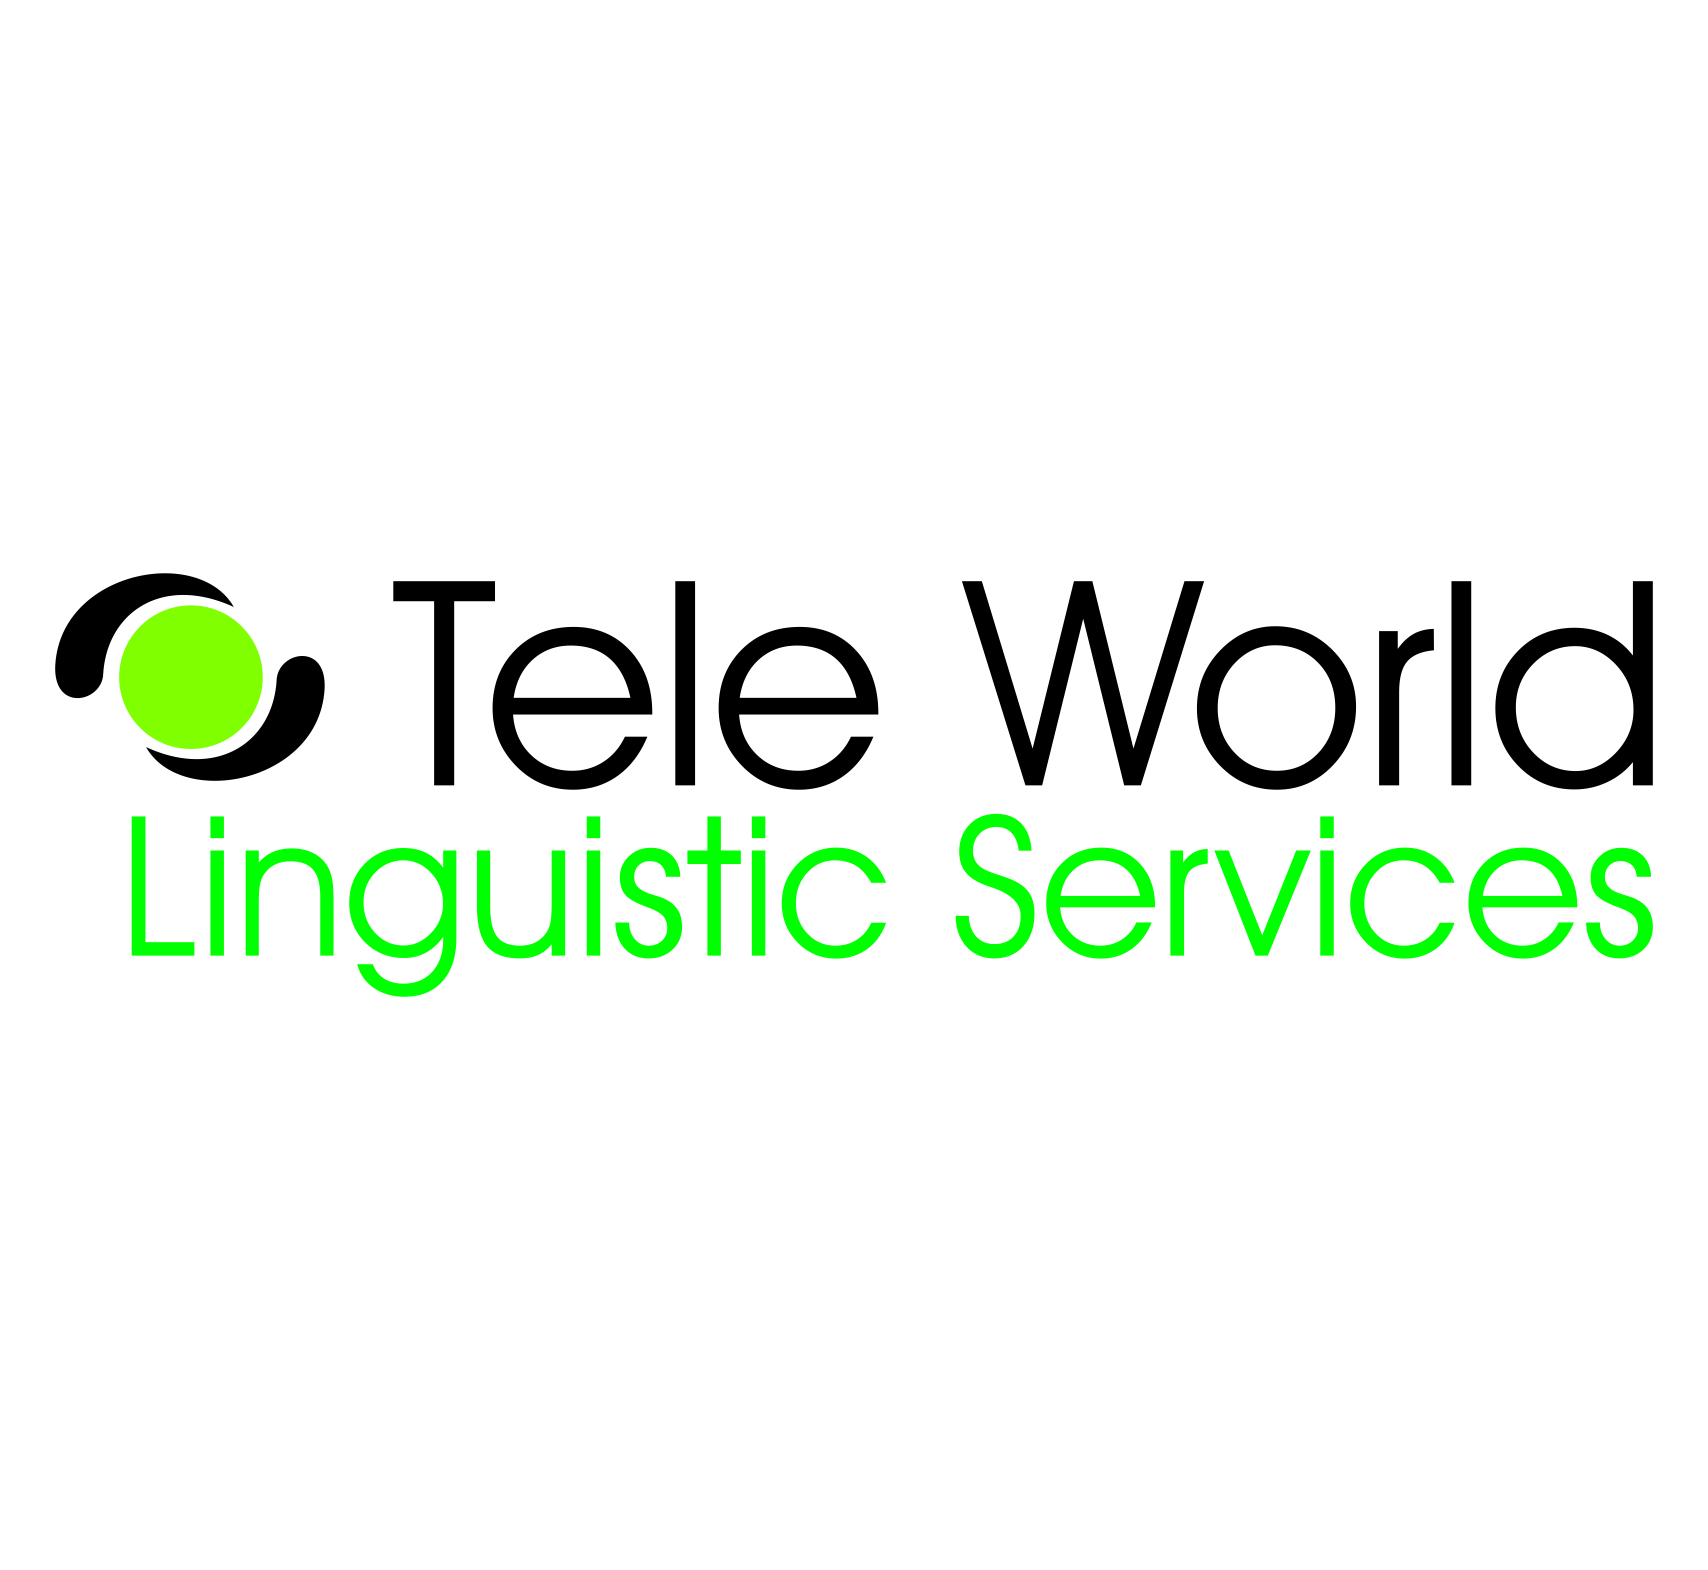 Tele Word Linguistic Services